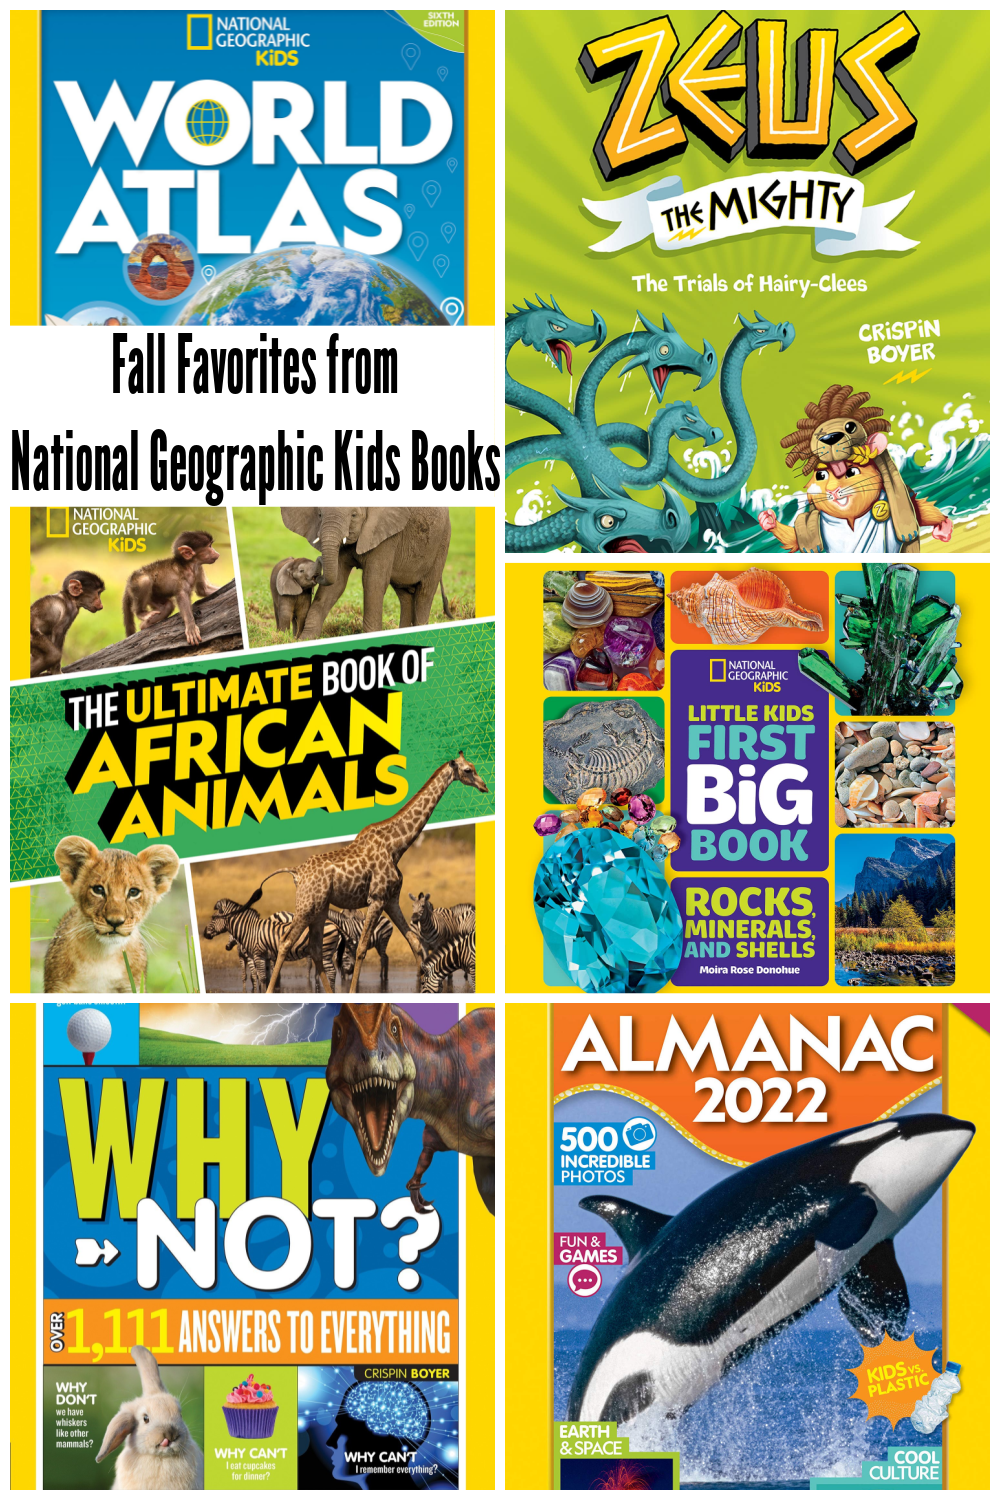 Fall Favorites from National Geographic Kids Books